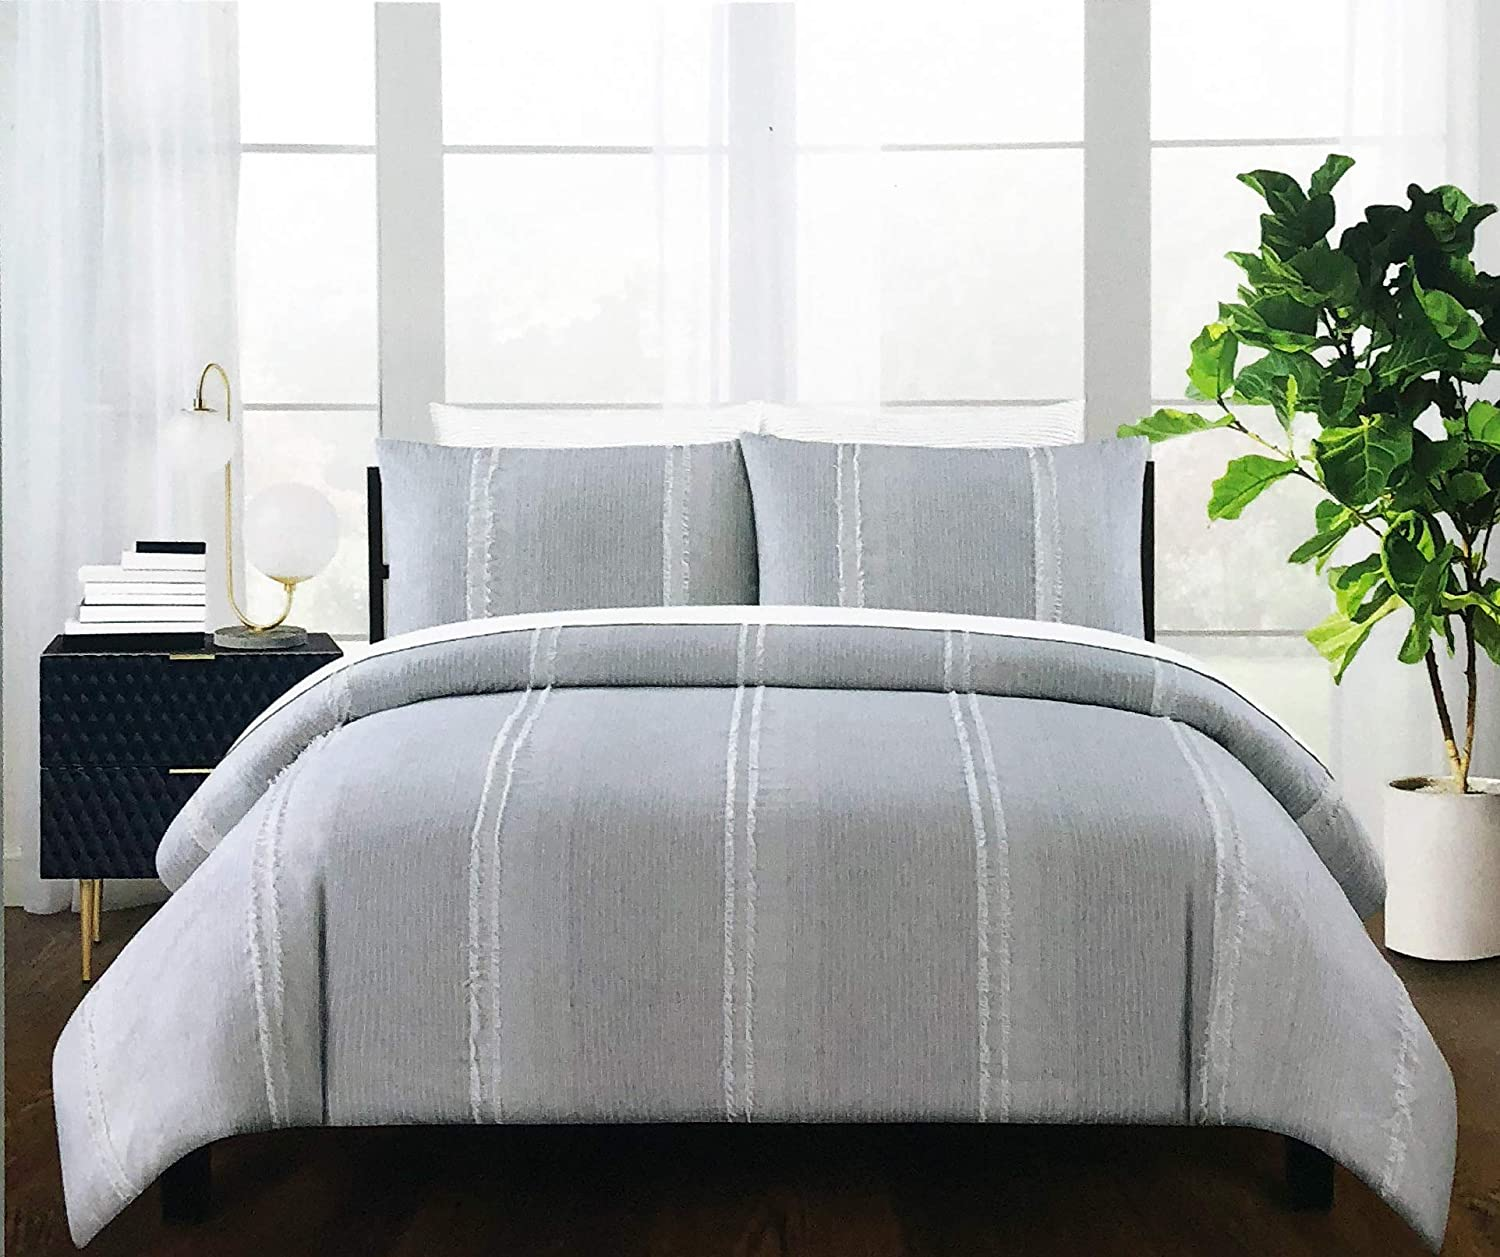 Elements Bedding Full/Queen Size Cotton Duvet Comforter Cover Set Shams Thin Gray White Vertical Stripes with Wider Textured Tufted Stripes Pattern Boho Shabby Chic Frayed Stripes Design